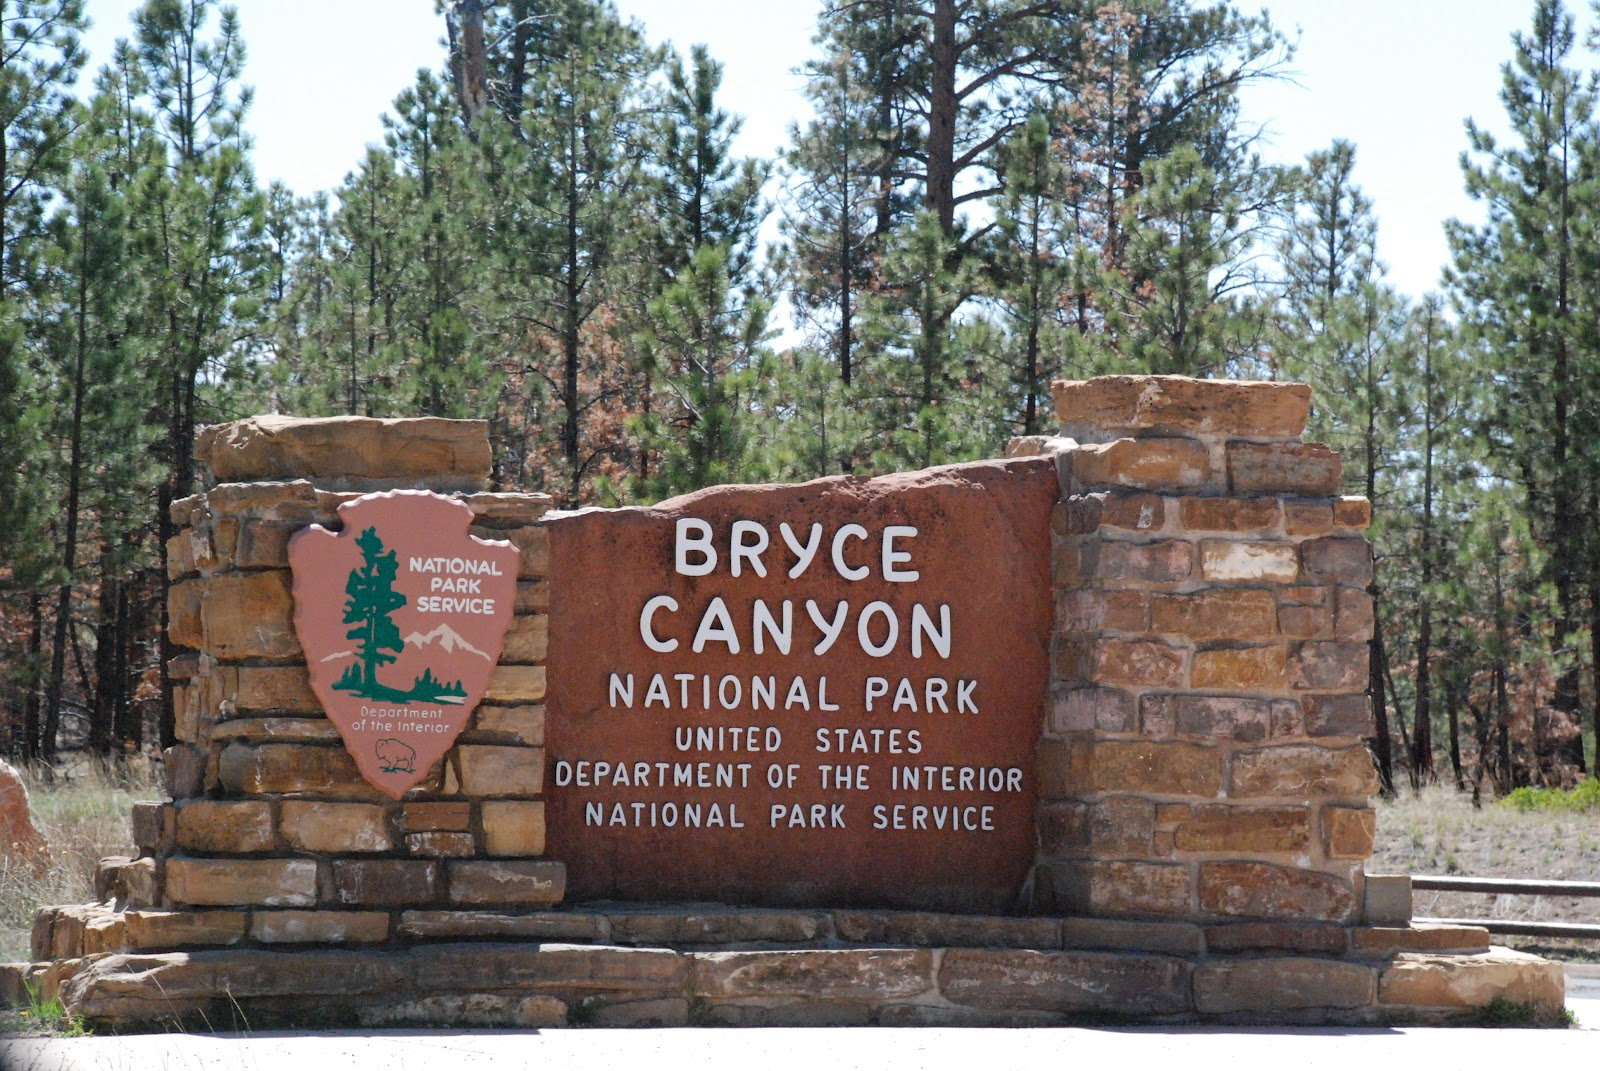 adams rving adventures bryce canyon national park bryce. Black Bedroom Furniture Sets. Home Design Ideas